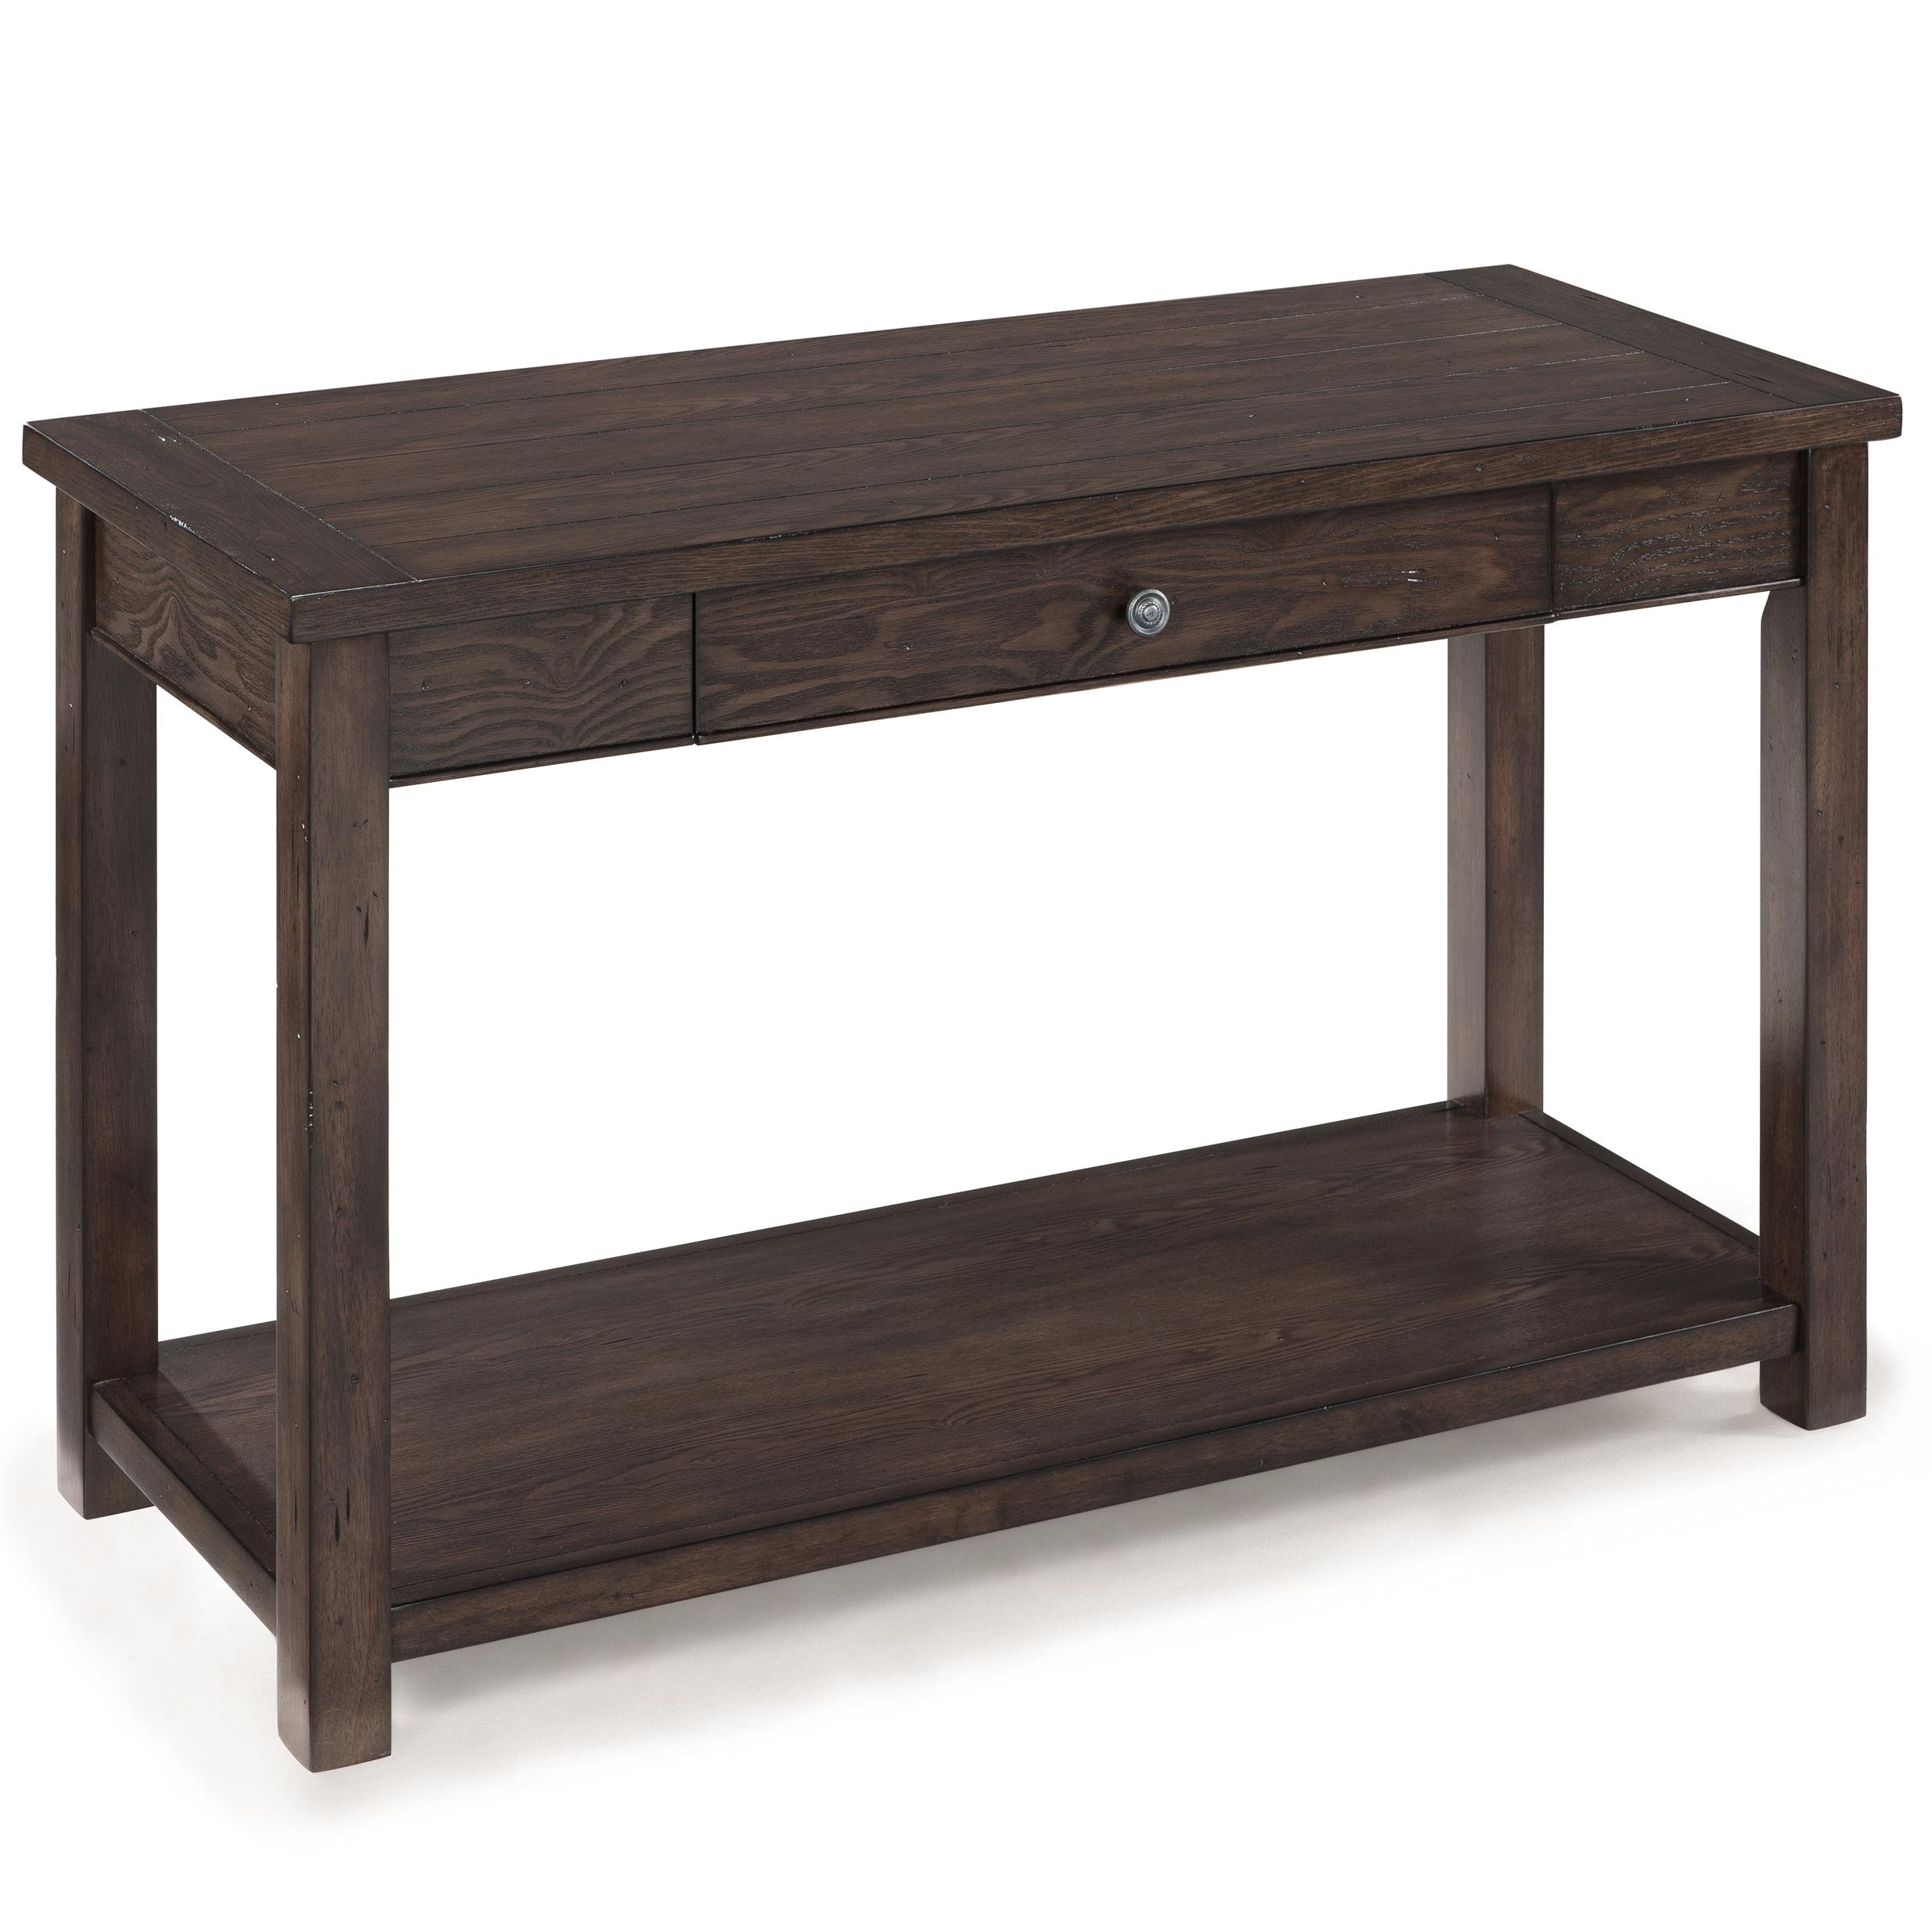 Magnussen Home Clayton Rectangular Sofa Table With Drawer and